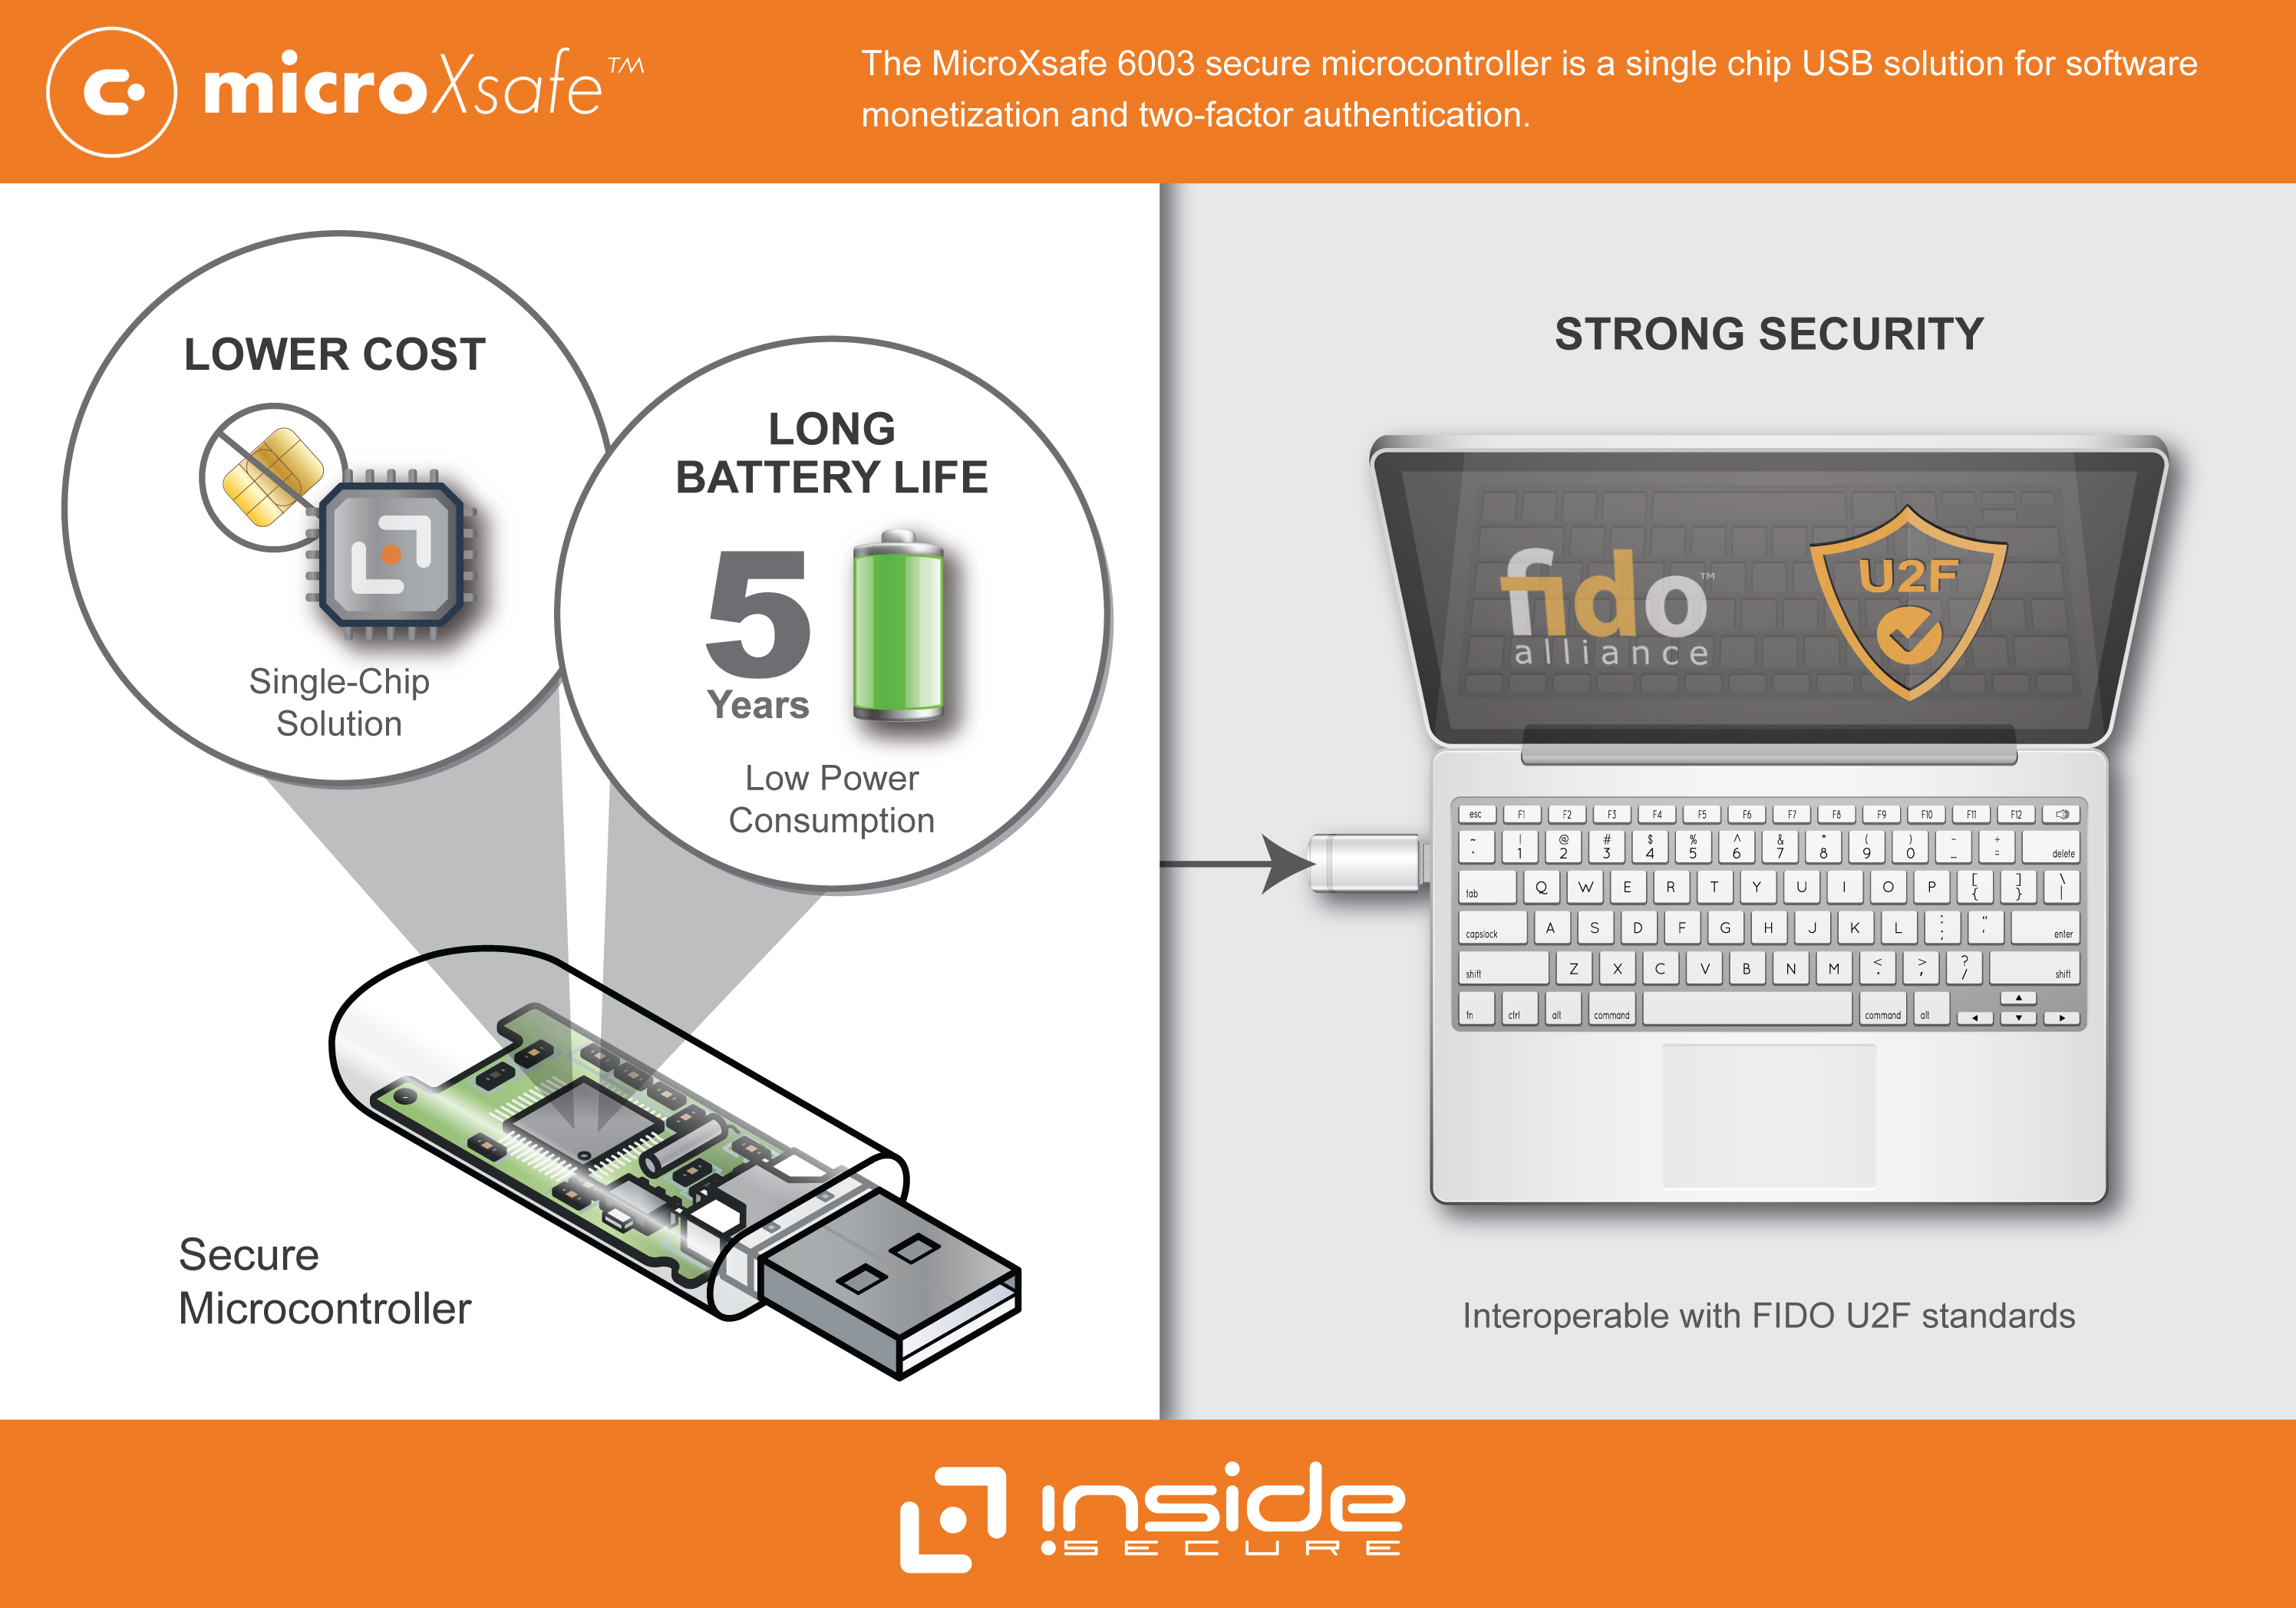 inside secure introduces a single chip usb solution for software